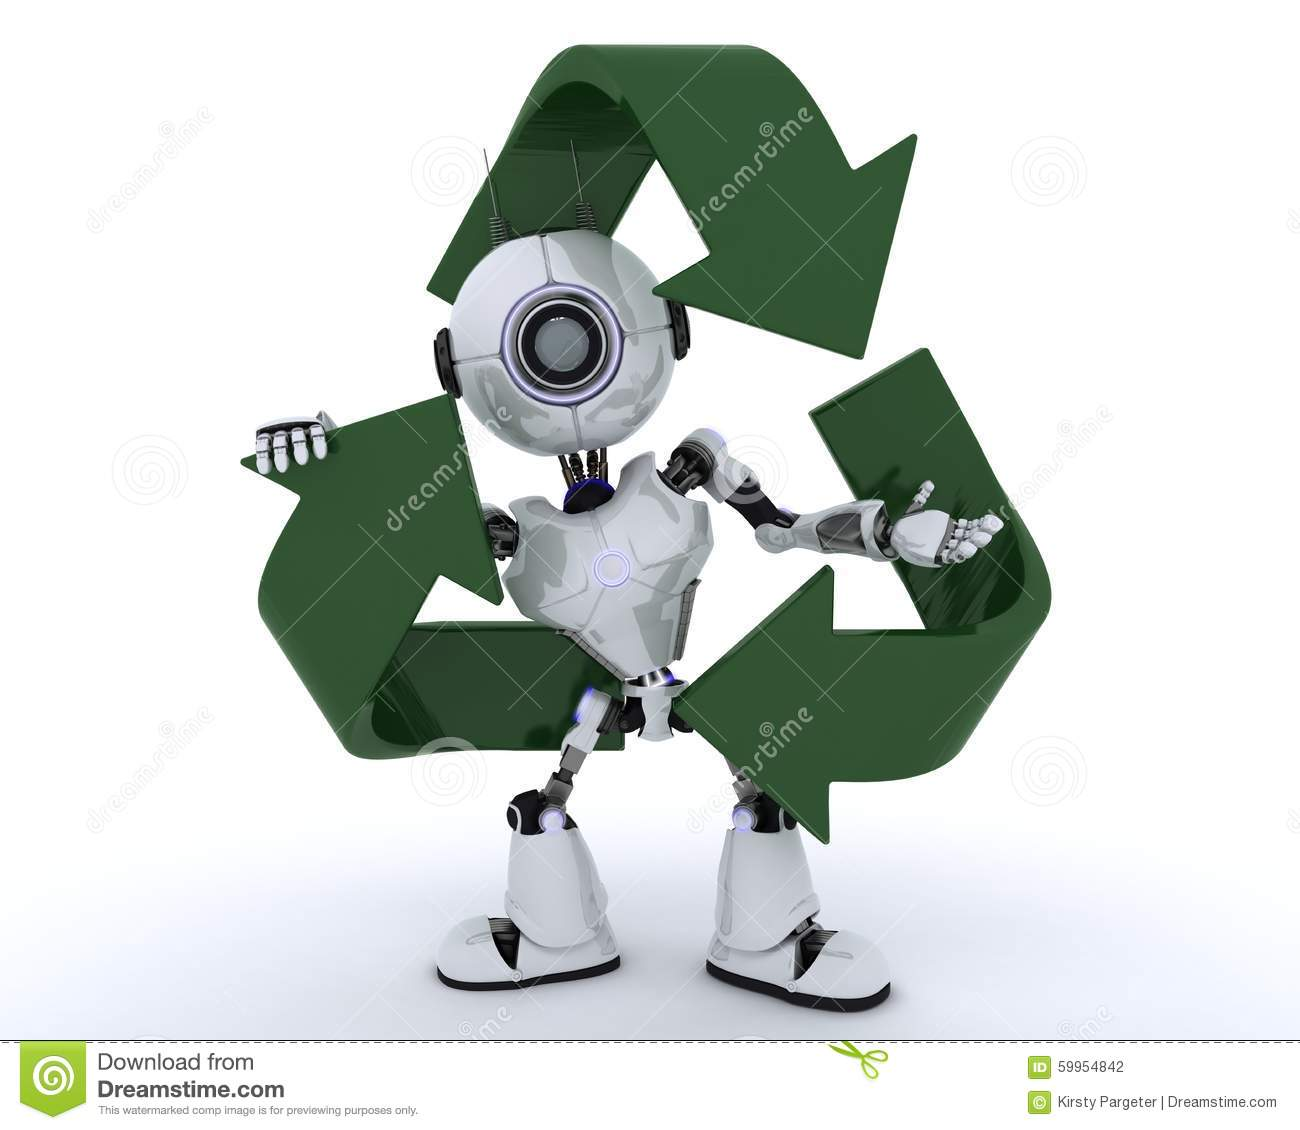 Robot with recycling symbol